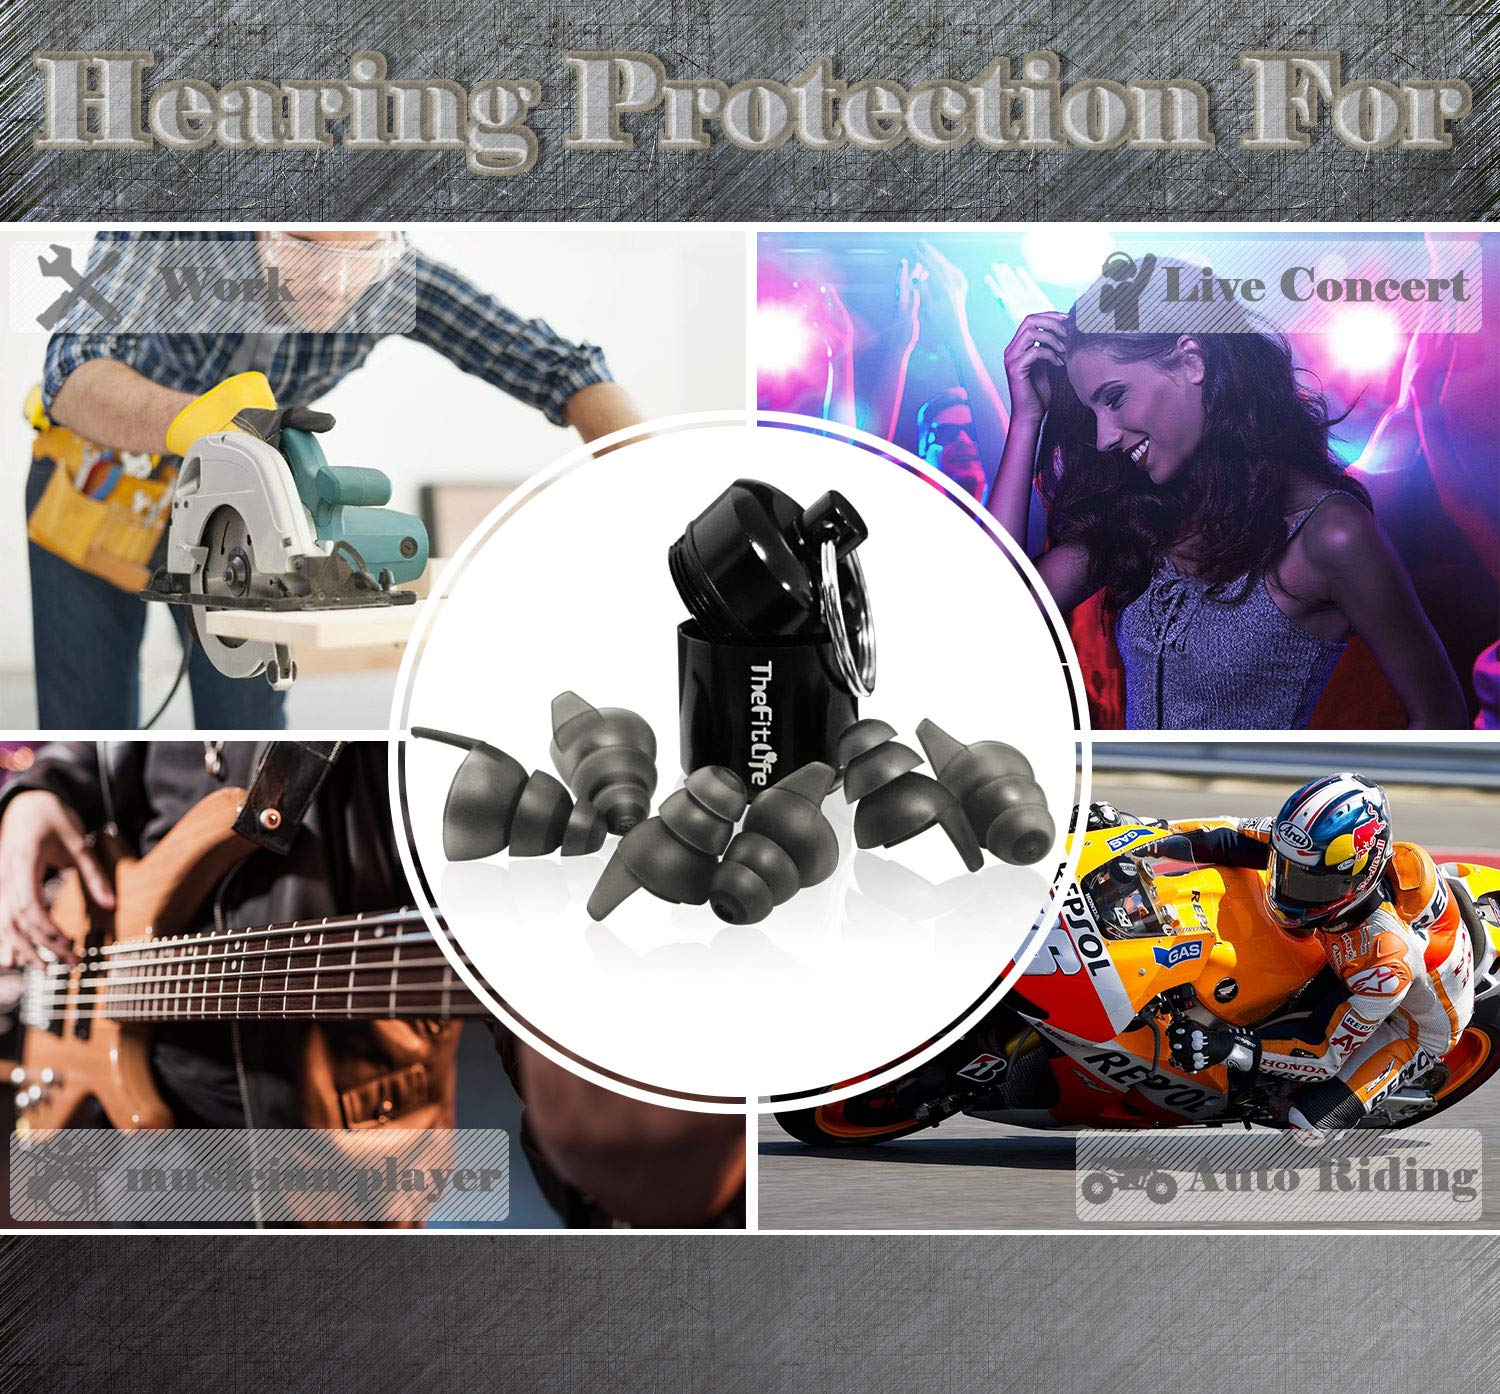 TheFitLife Noise Reduction Ear Plugs - Ultra Comfortable and Reusable Silicone High Fidelity Earplugs with 23dB SNR for Musicians Concerts Motorcycle Shooting 3 Sizes Fit for Kids Men Women (Black) by TheFitLife (Image #7)